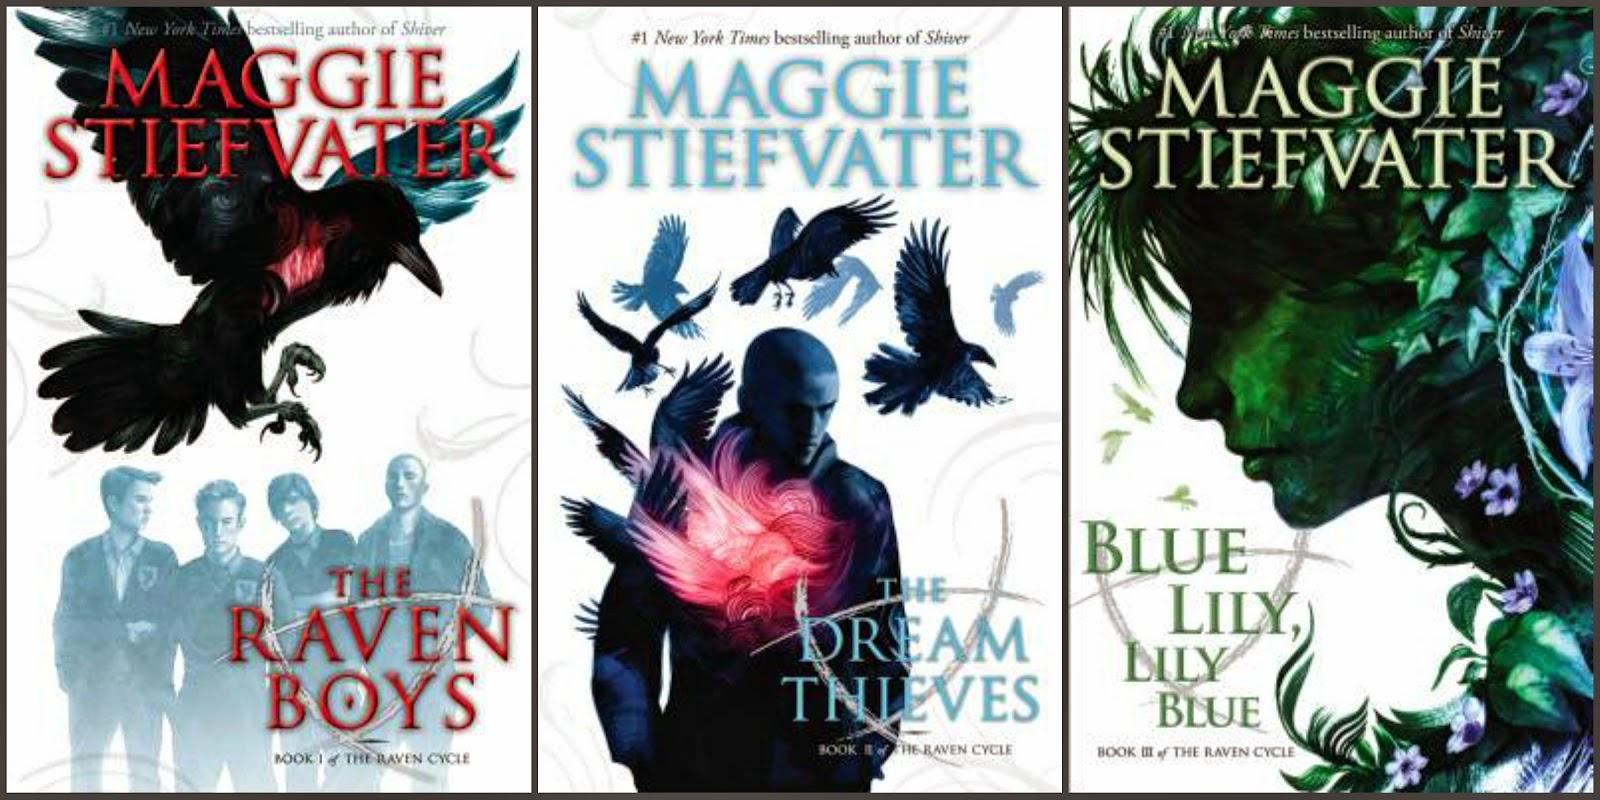 The Raven Boys; The Dream Thieves; Blue Lily, Lily Blue by Maggie Stiefvater